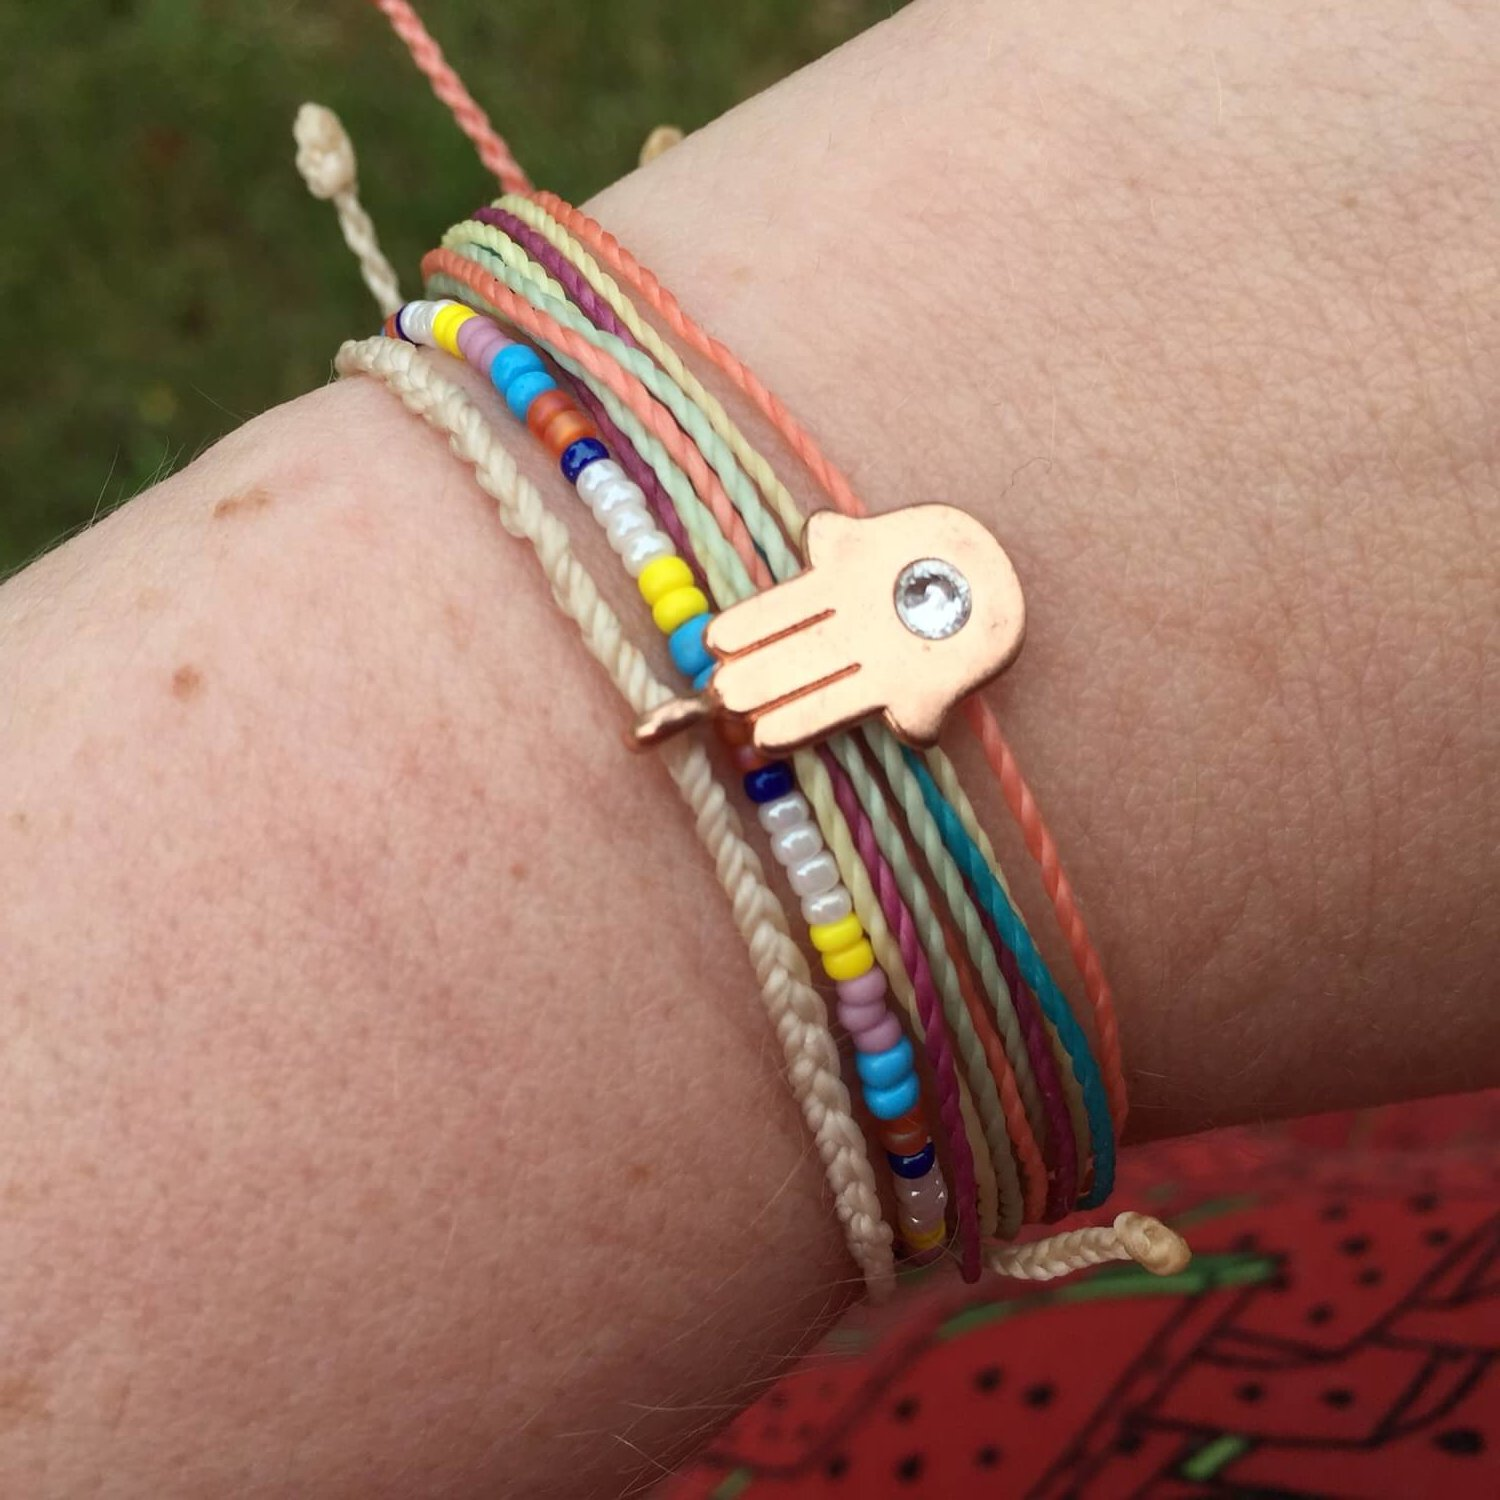 Pura Vida Monthly Club August 2016 Subscription Box Review + Shop Coupon!